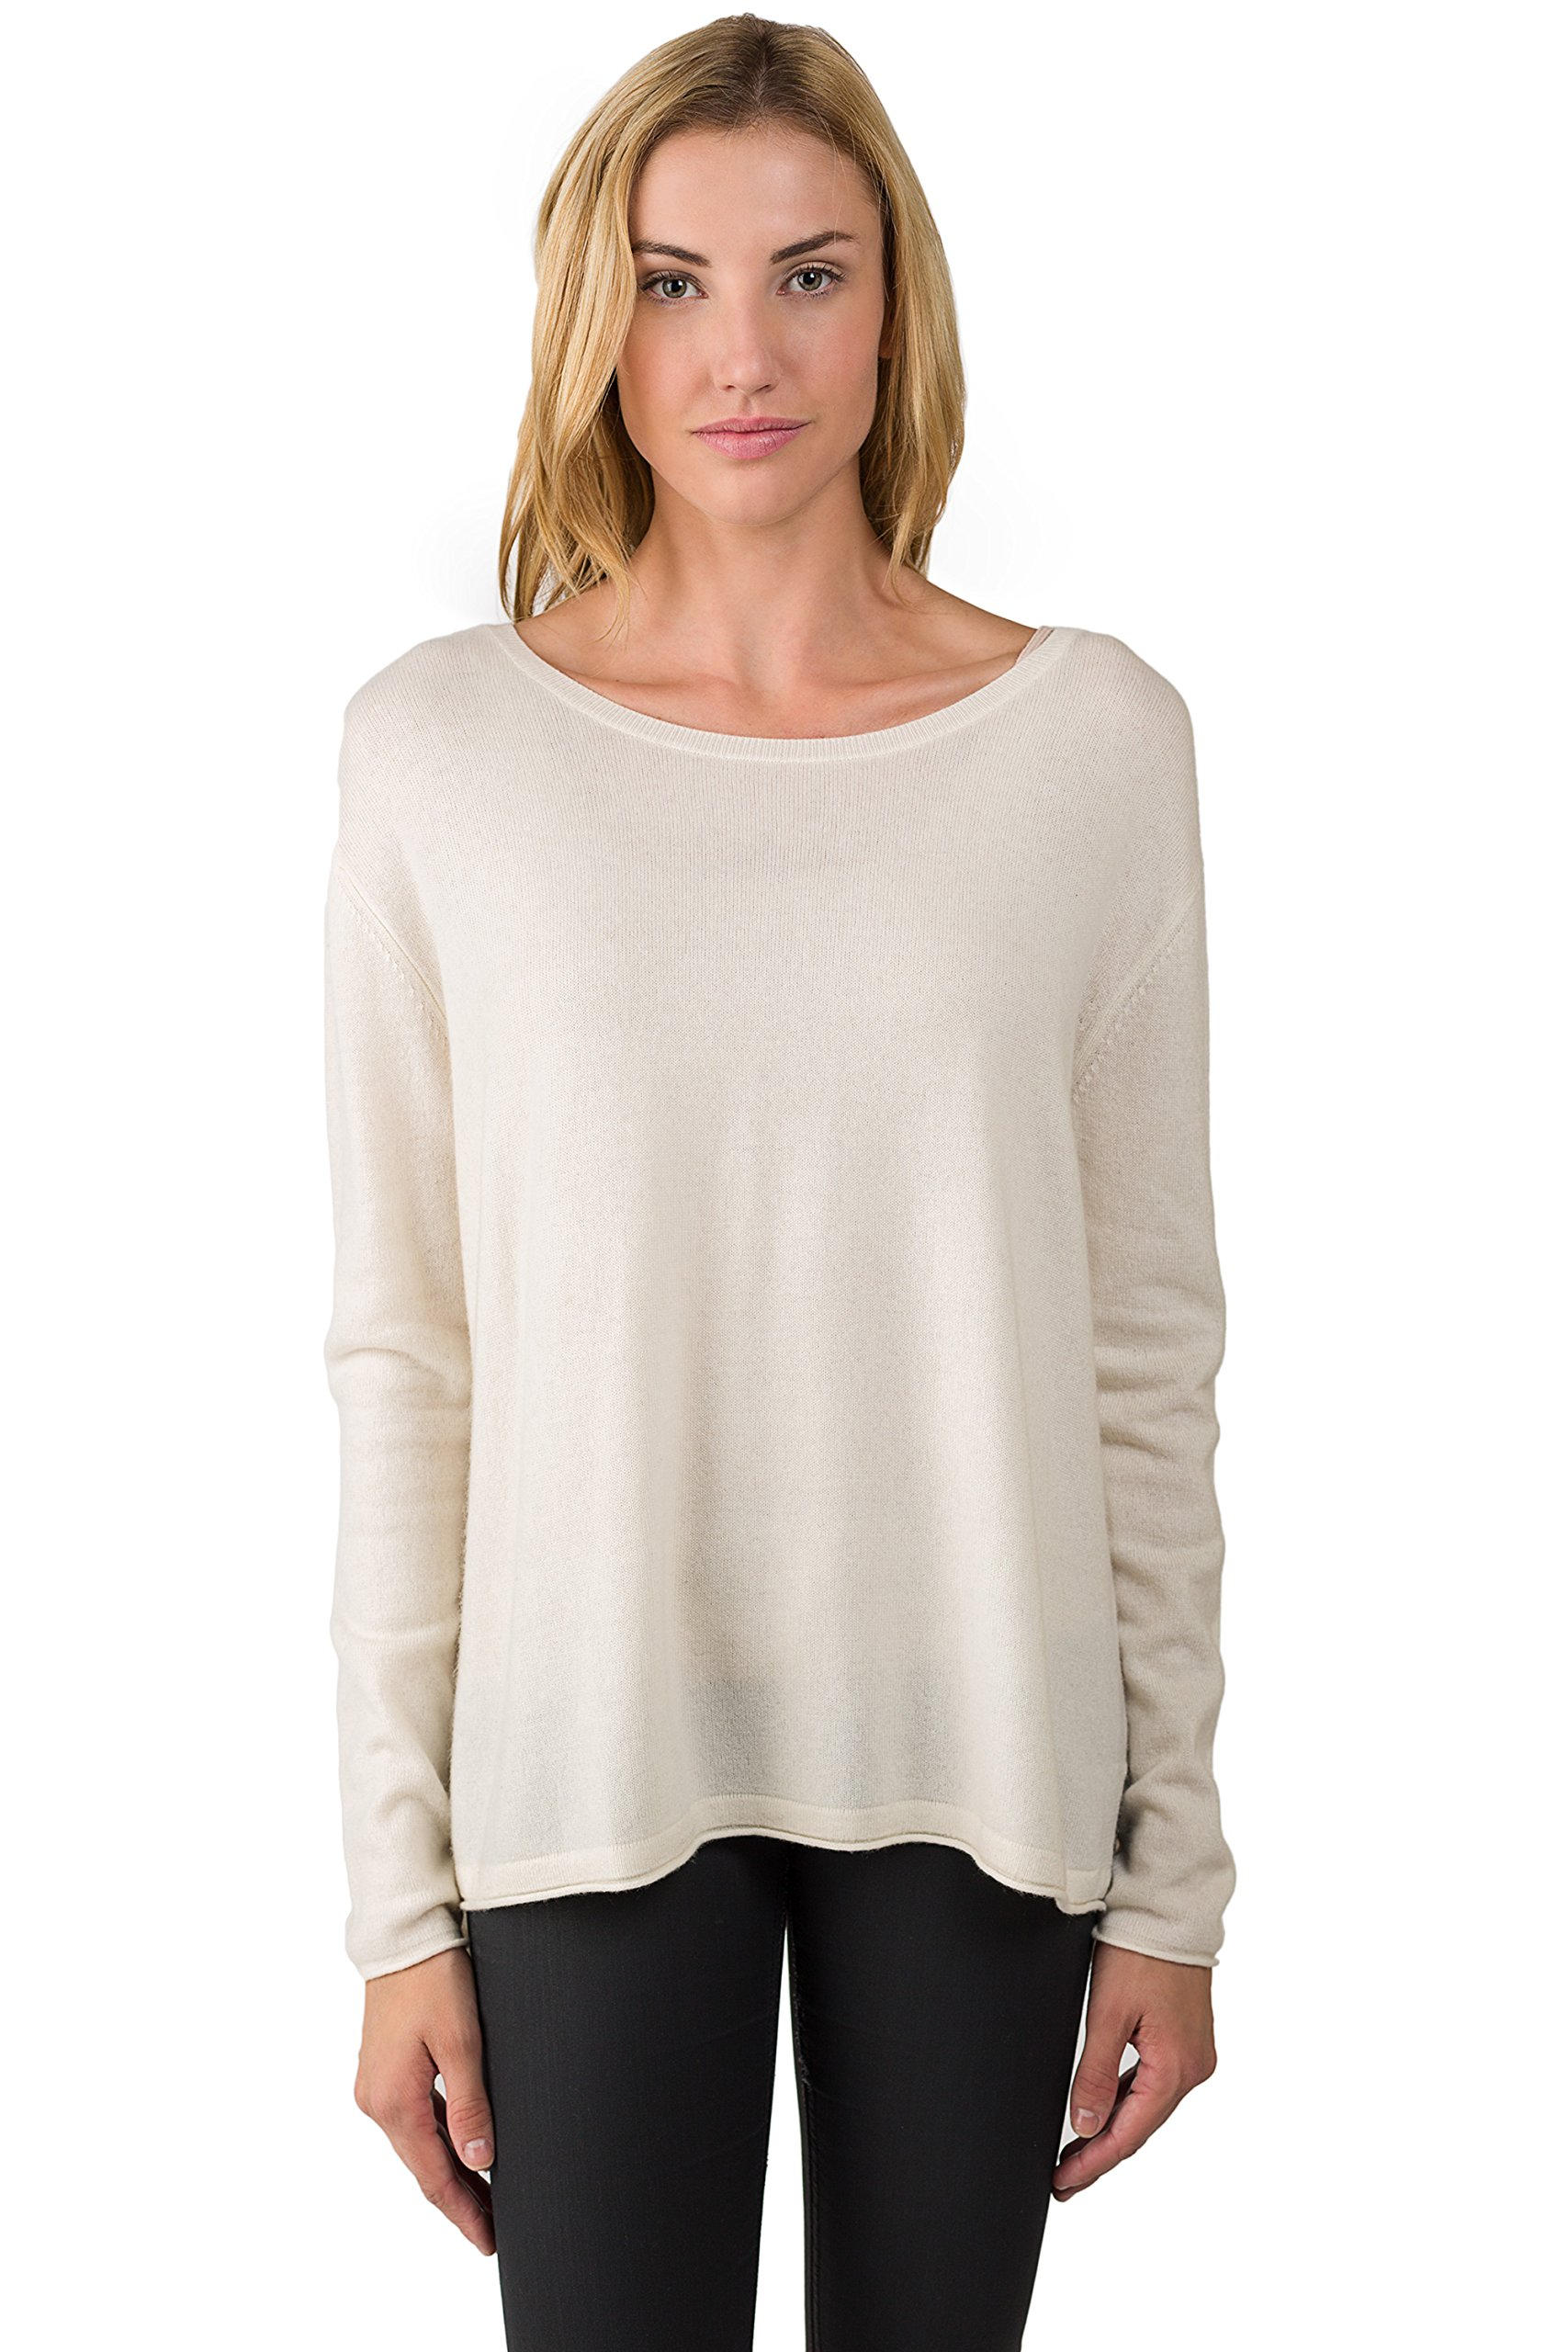 J CASHMERE Women's 100% Cashmere Long Sleeve Pullover High Low Crewneck Sweater Cream Small